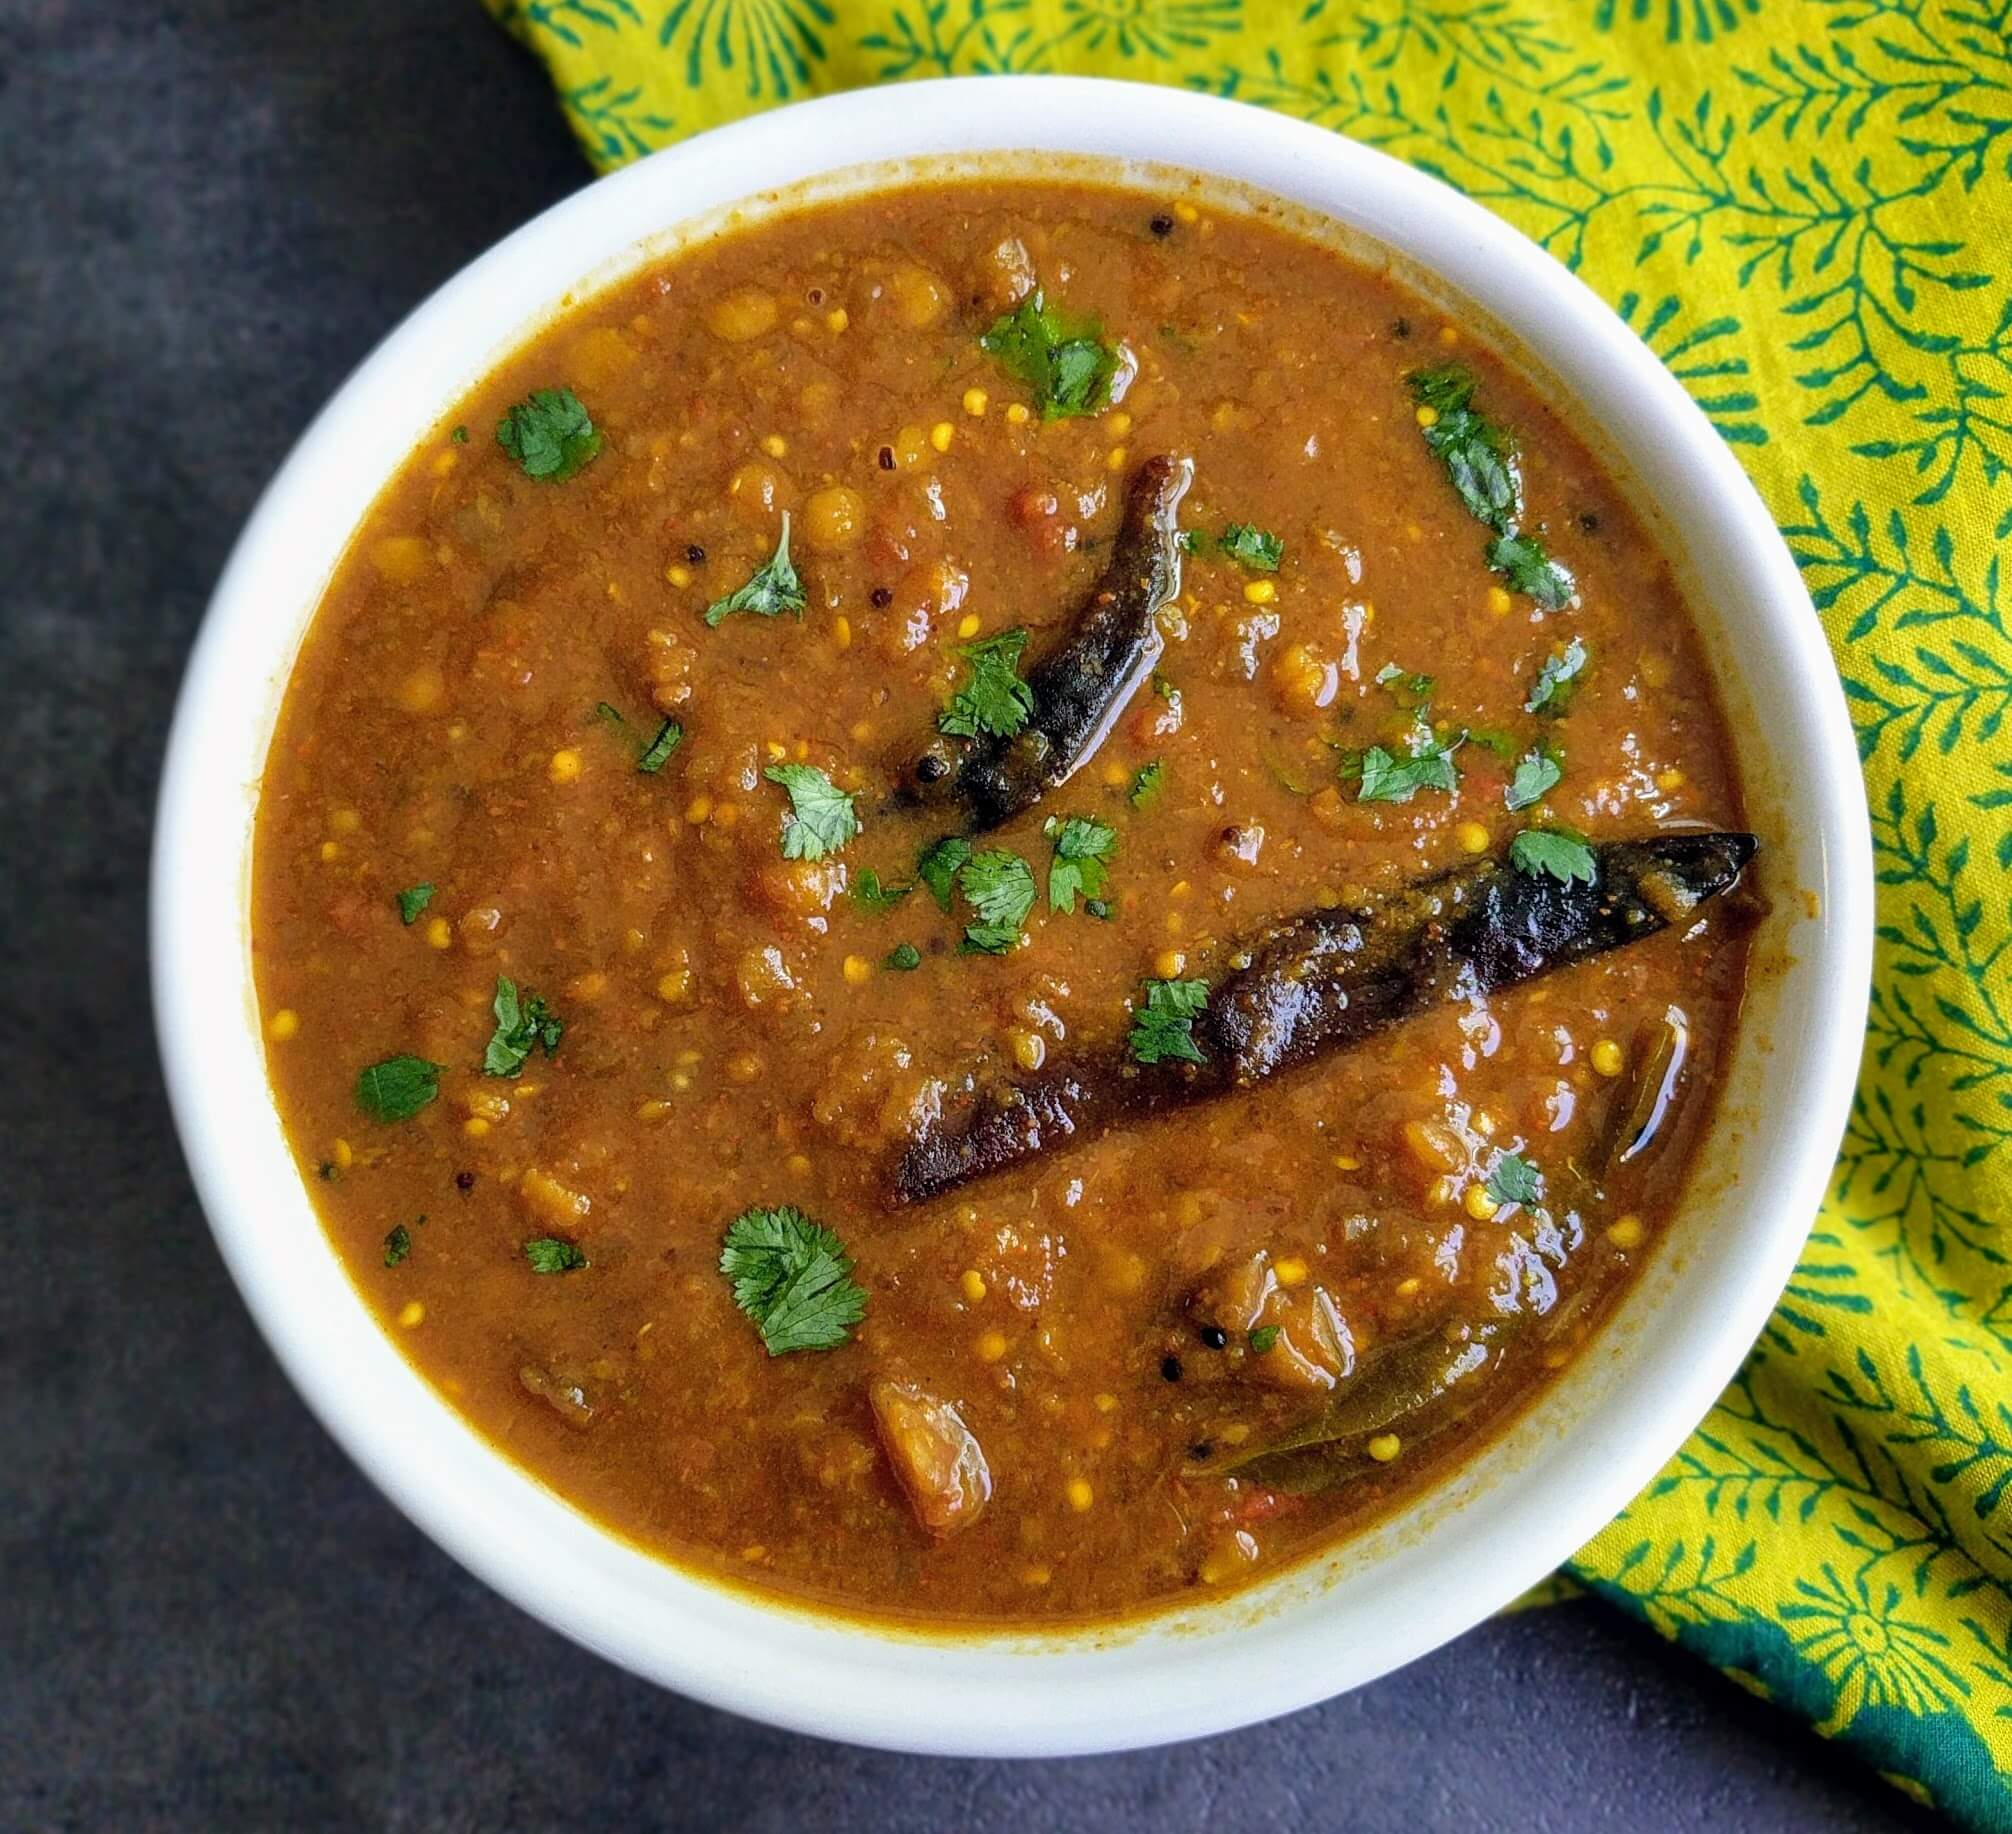 Kathirikai Sambar or Brinjal Sambar Recipe Step By Step Instructions